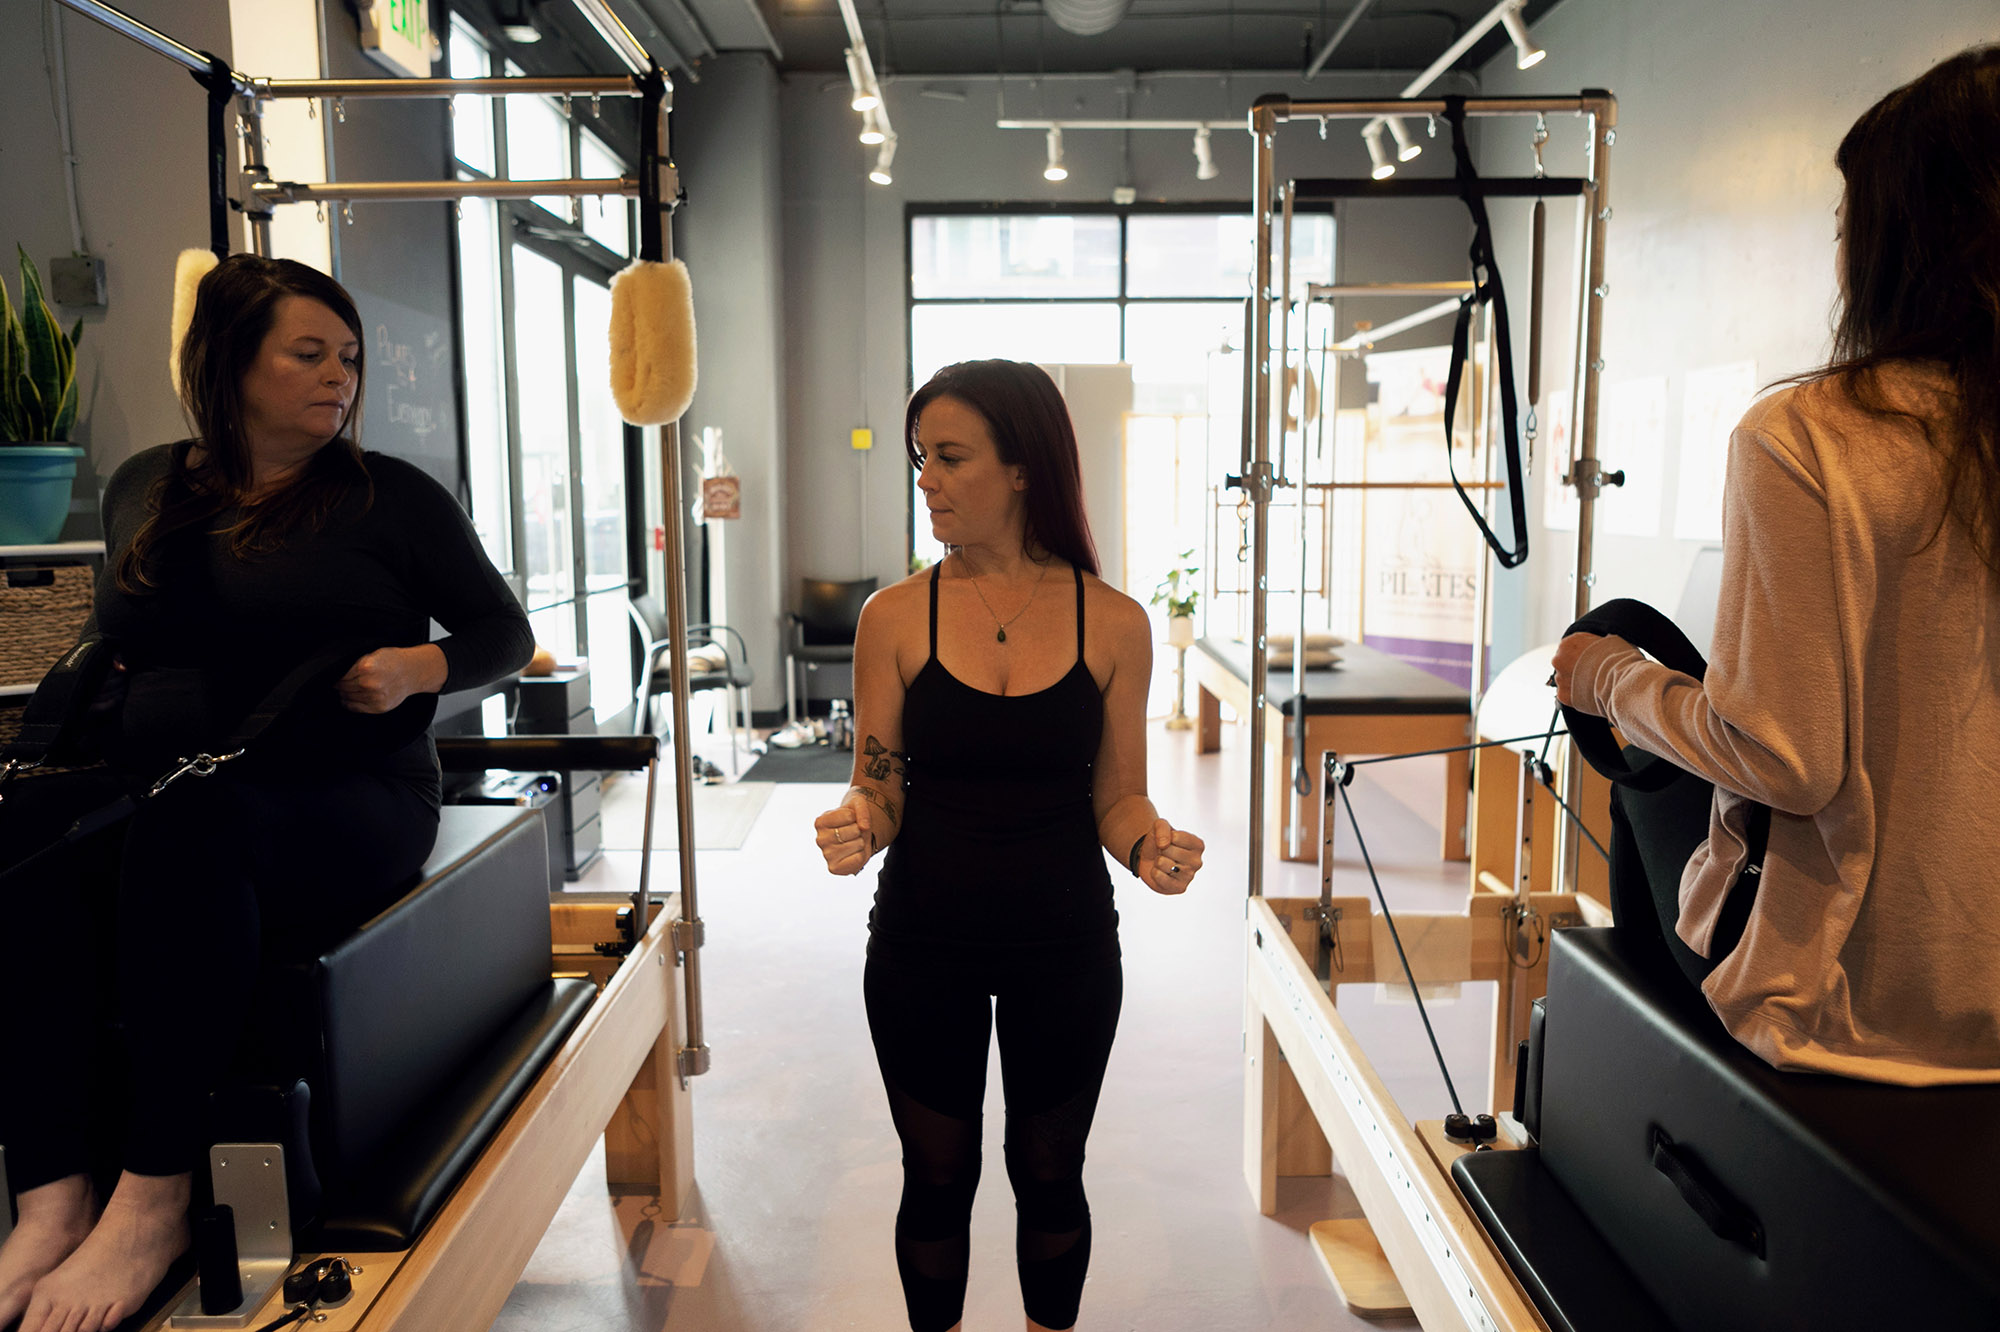 Two students practicing pilates in a semi-private while pilates instructor cues movements